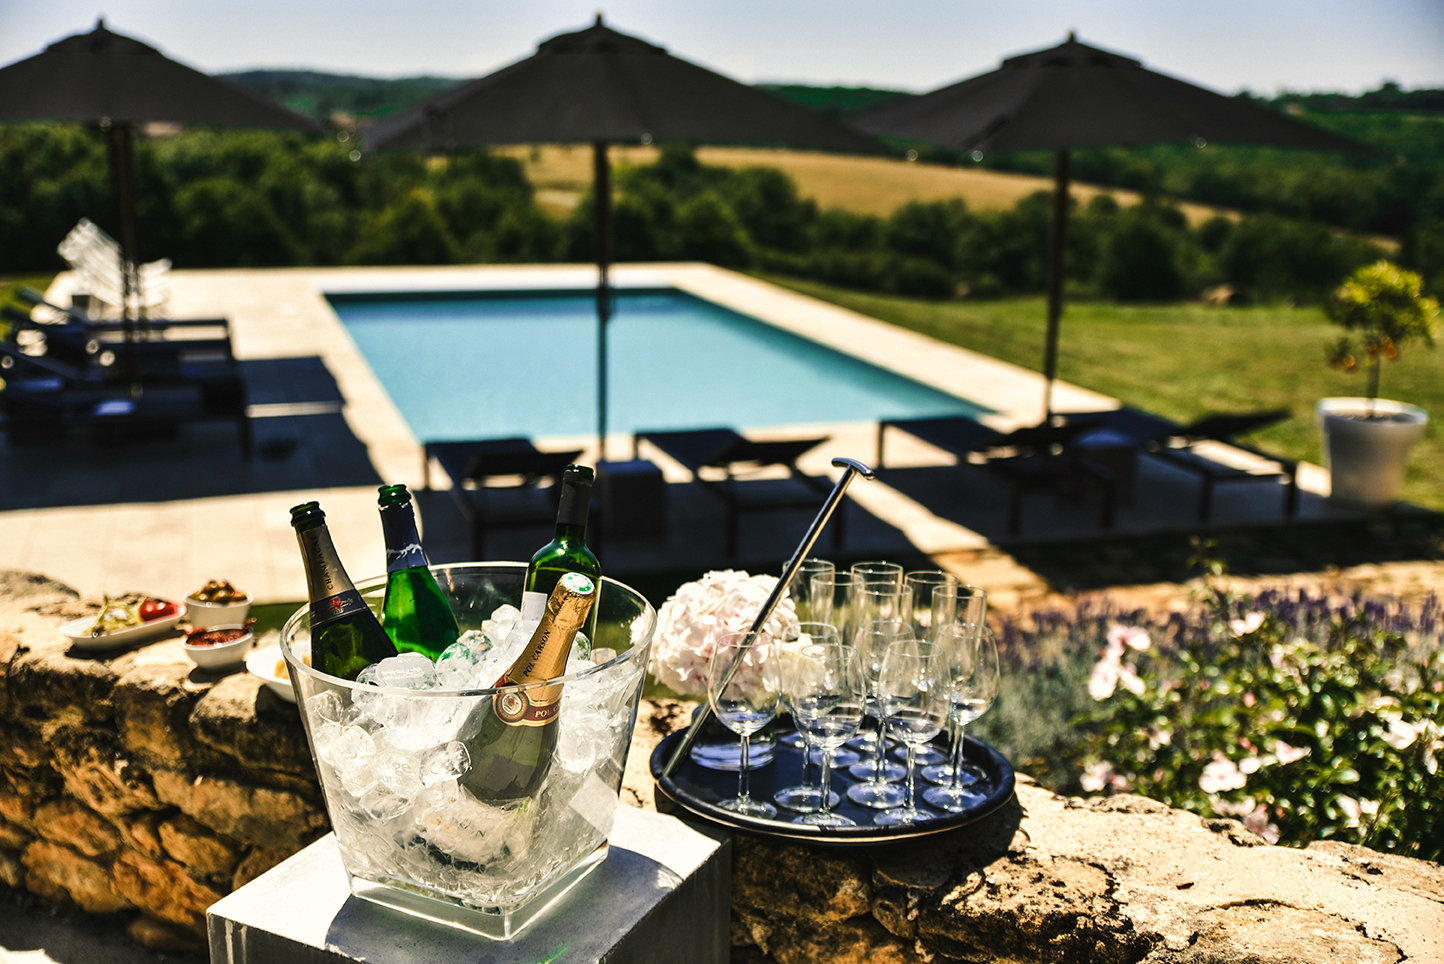 Apéritif on the terrace overlooking the pool at 5-star gites in the Dordogne with an ice-bucket filled with bottles, a tray of glasses and an amazing view over the private pool and the Périgrodine countryside beyond